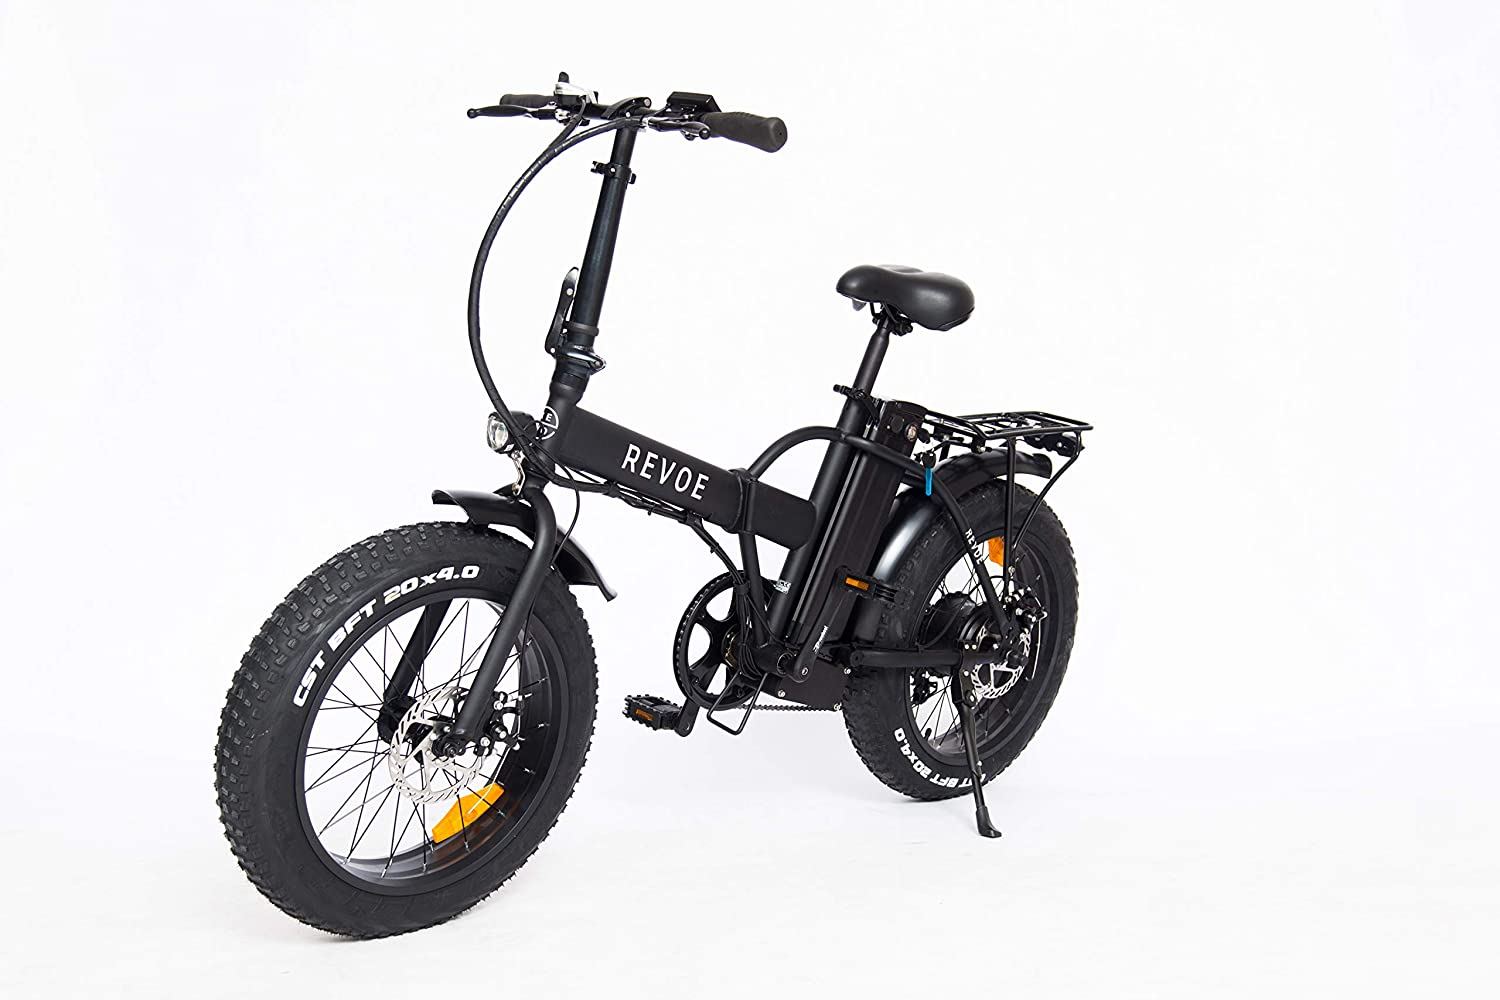 Revoe e-bike Dirt Vtc, Fat Bike Bicicleta Plegable, Negro, 20 ...